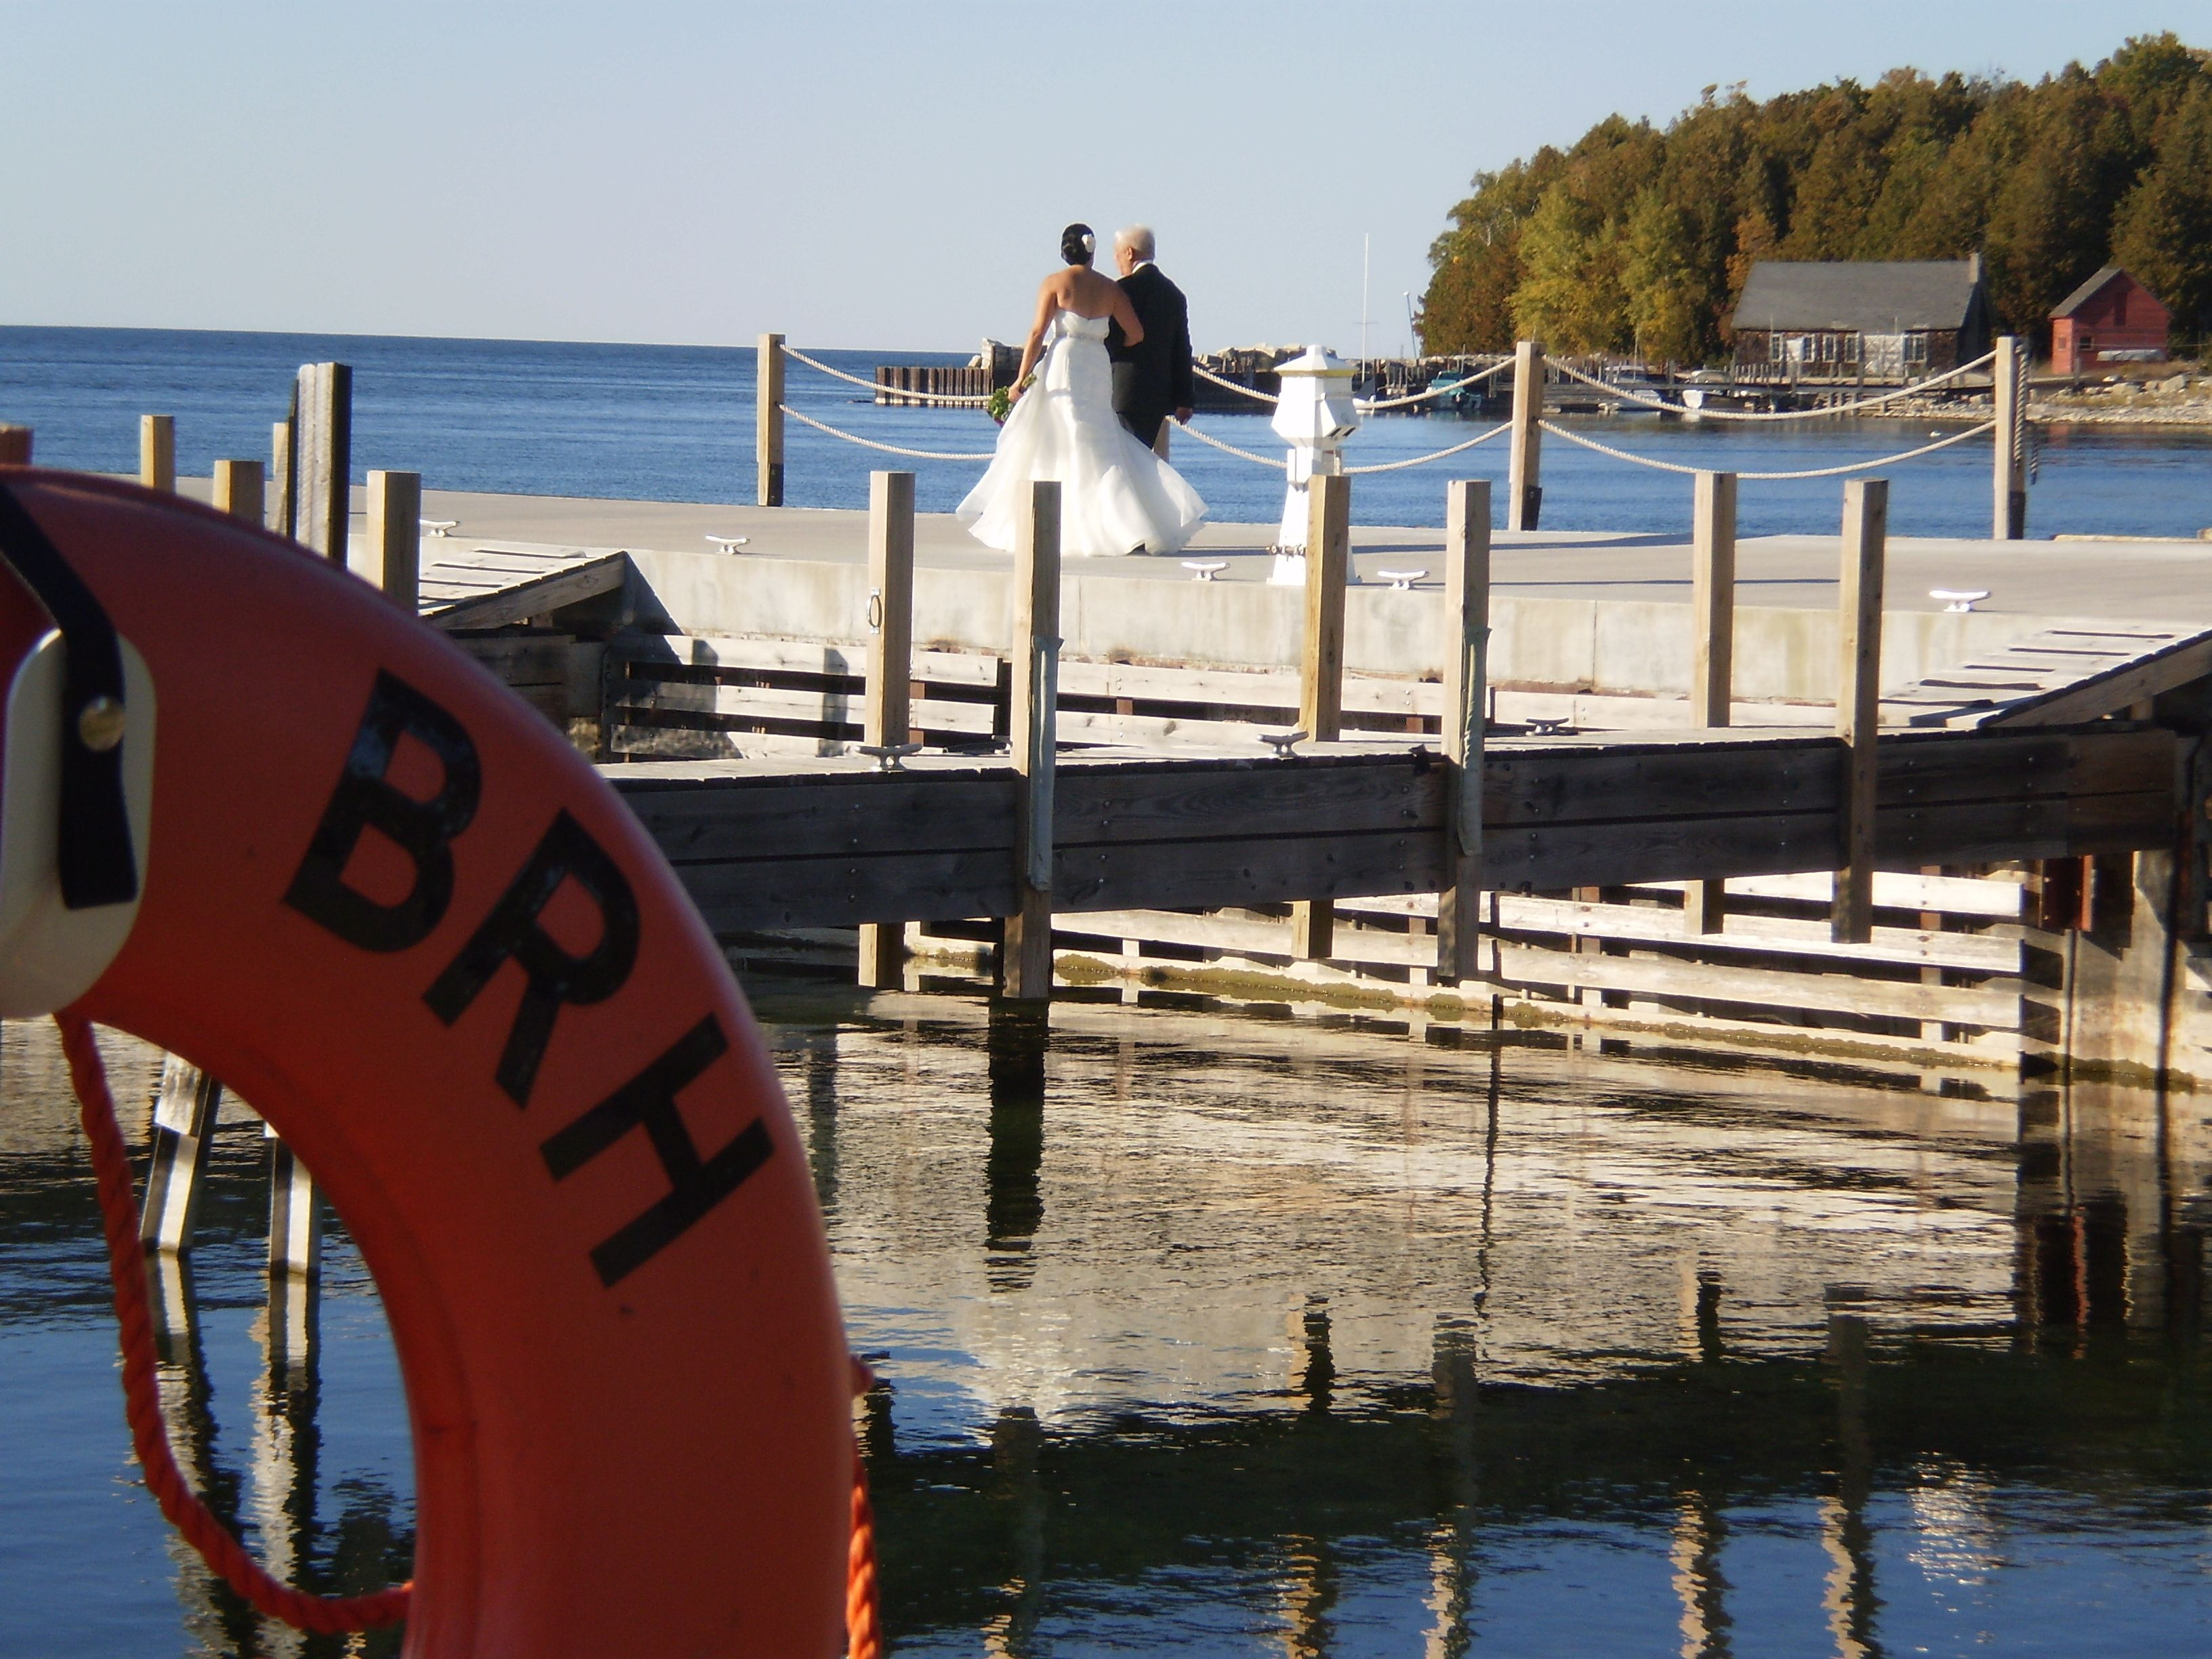 A stroll down the Bayview Resort & Harbor pier to get married! Congrats! September 2012.